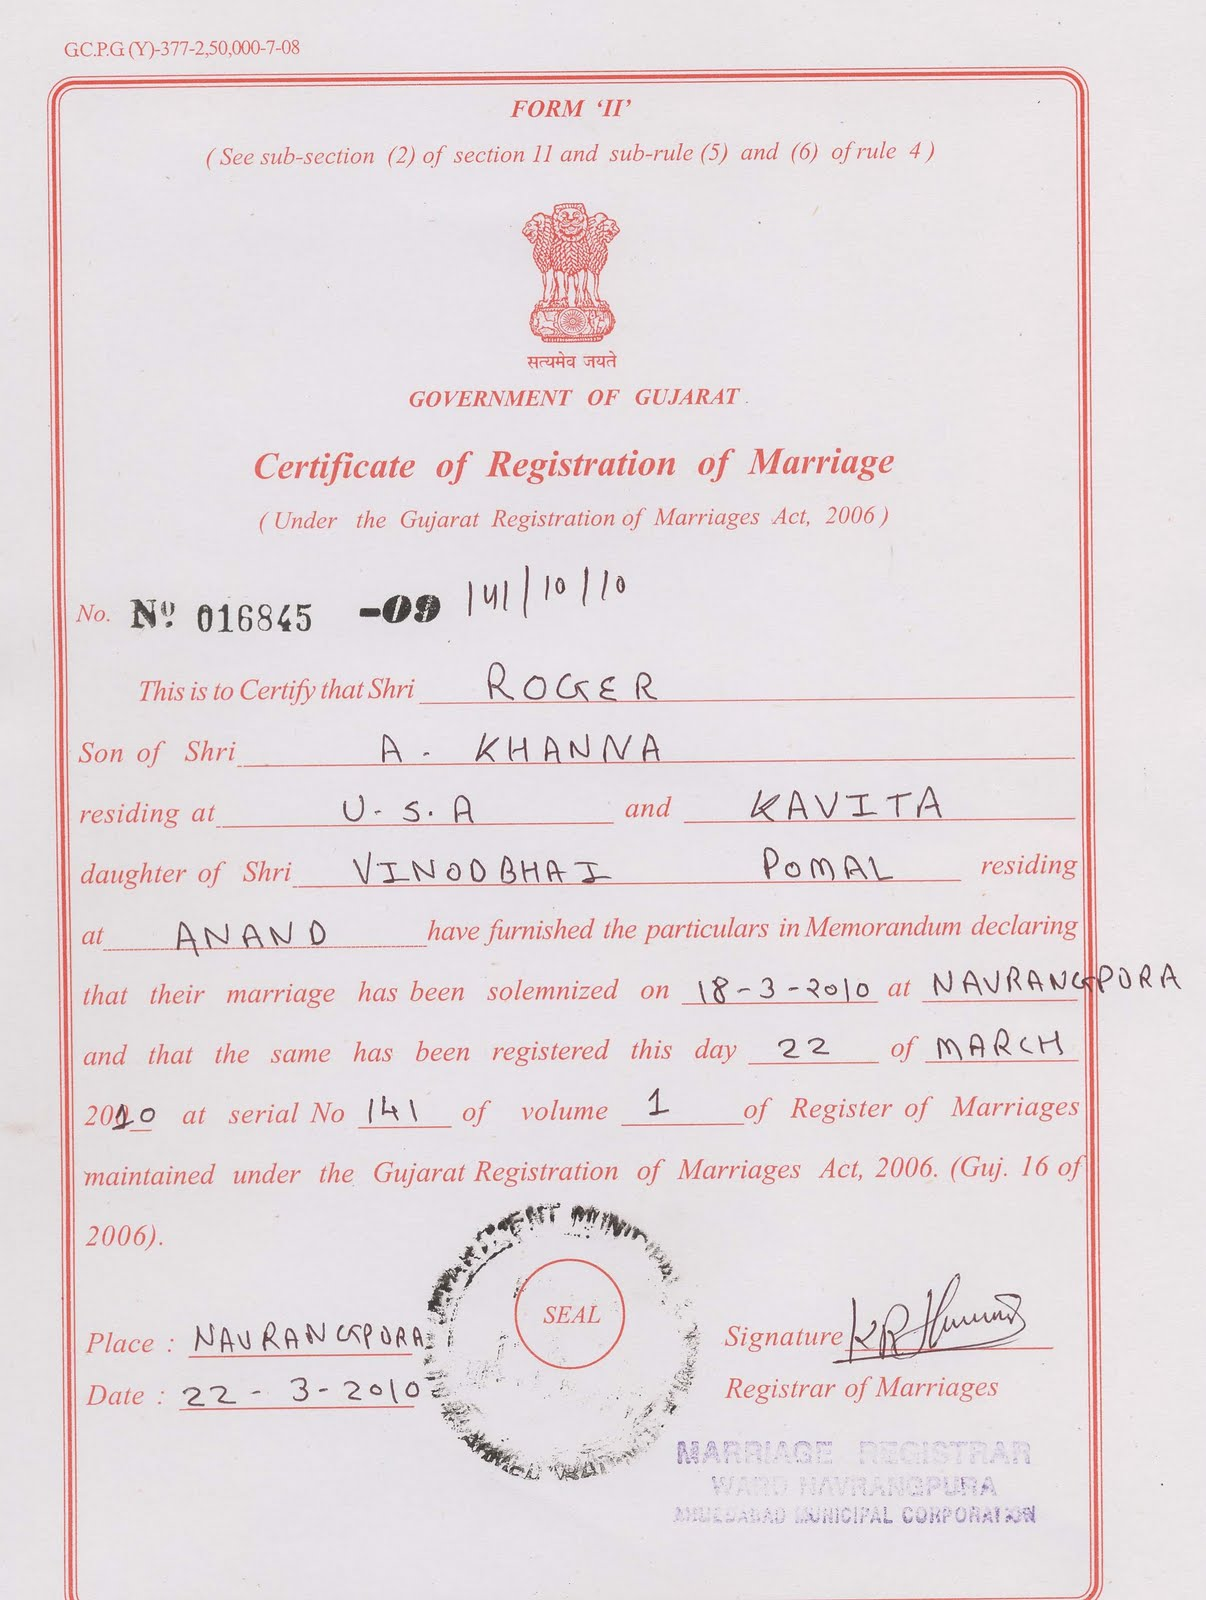 Law office of satish swami sample of merriage certificate from sample of merriage certificate from govtthority altavistaventures Image collections